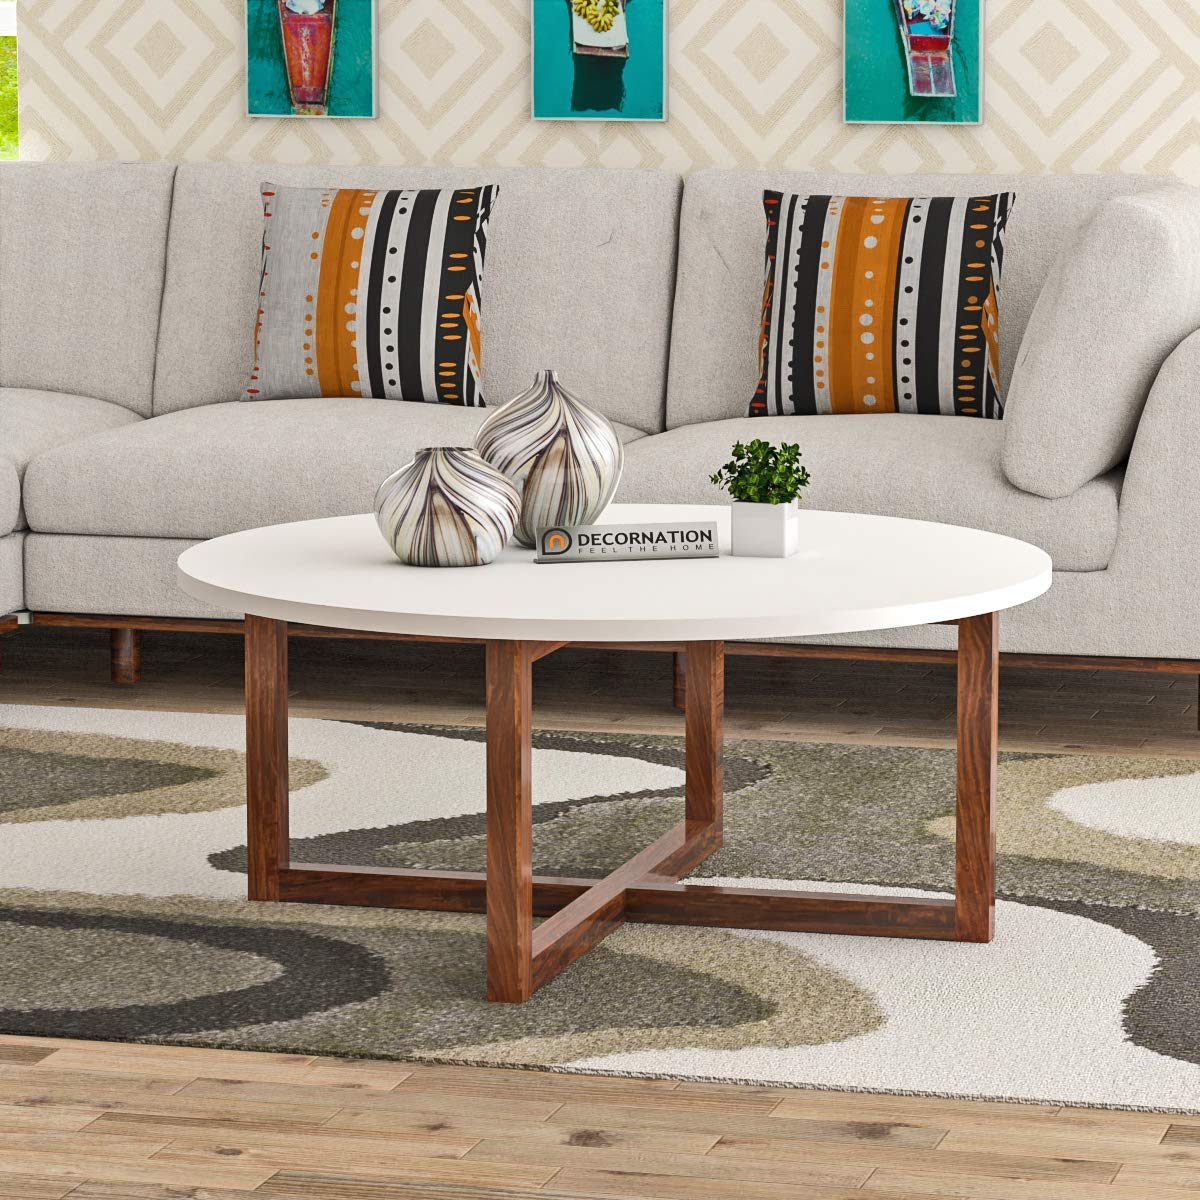 Decornation Alicea Wooden Mdf Round Coffee Table With Solid Wood Legs Sofa Table Center Table Home Furniture White Amazon In Home Kitchen